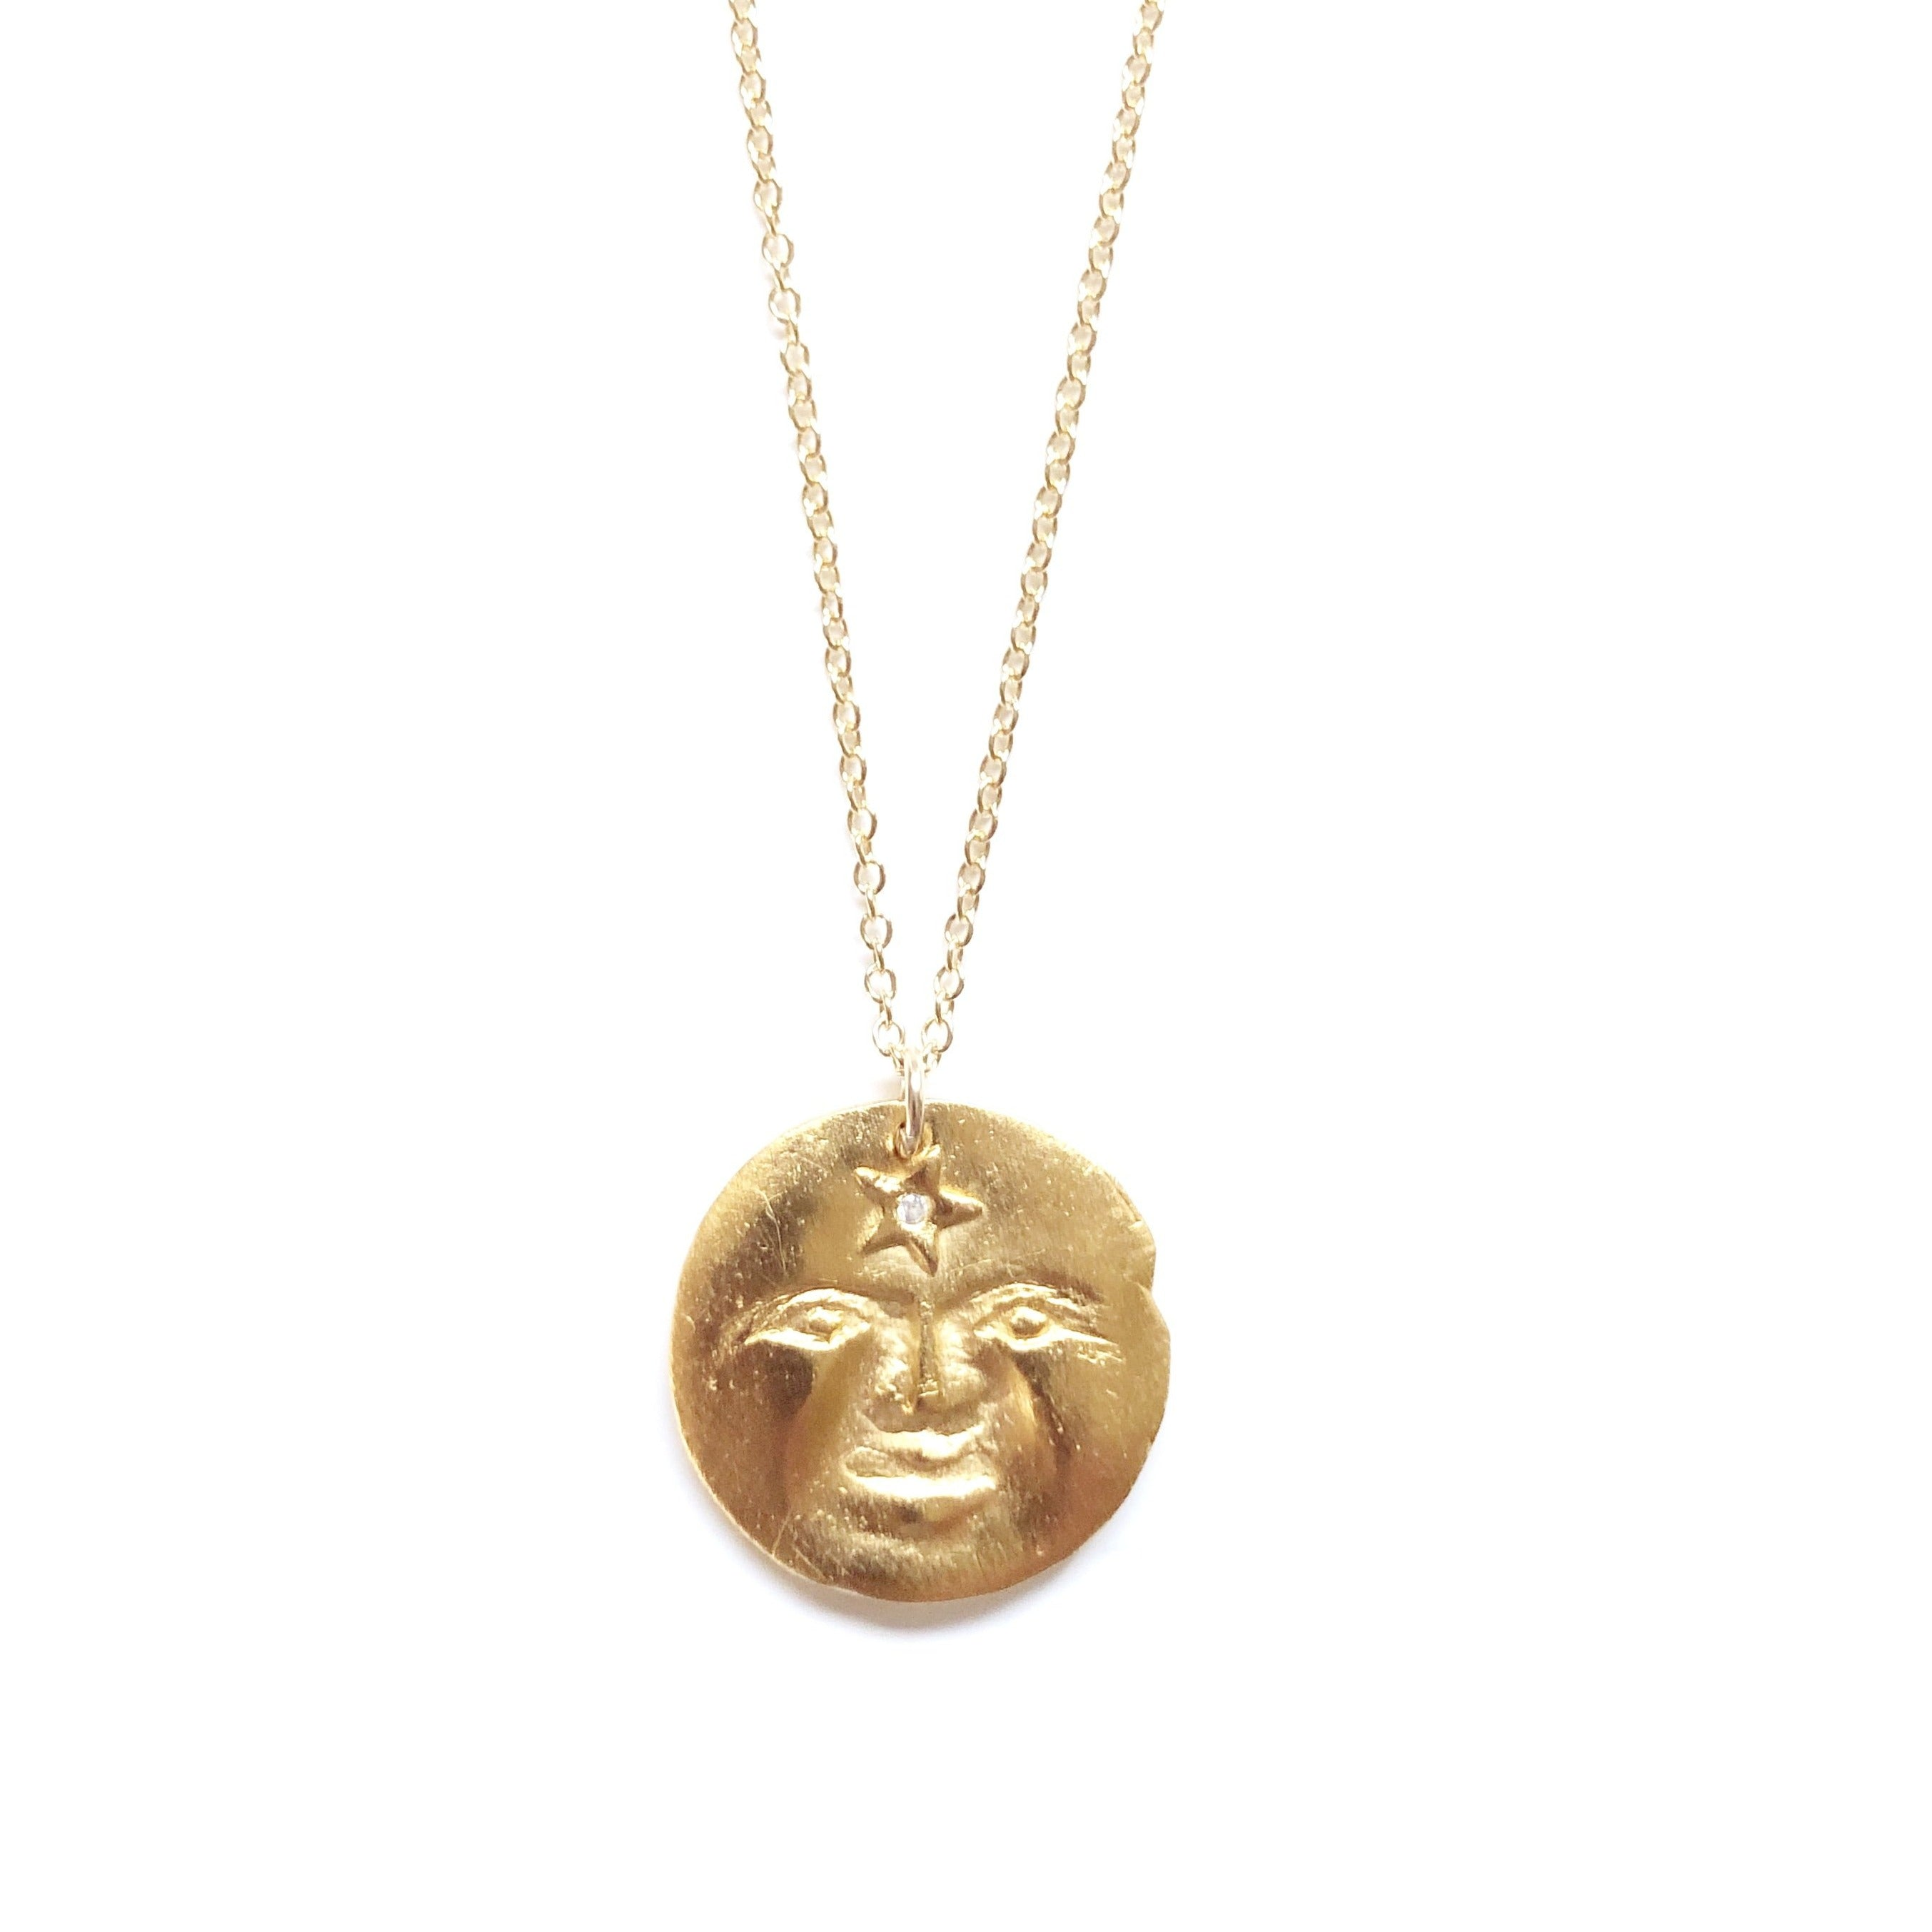 Moon-Face-Gold-Charm-Necklace-MAS-Designs-Jewelry